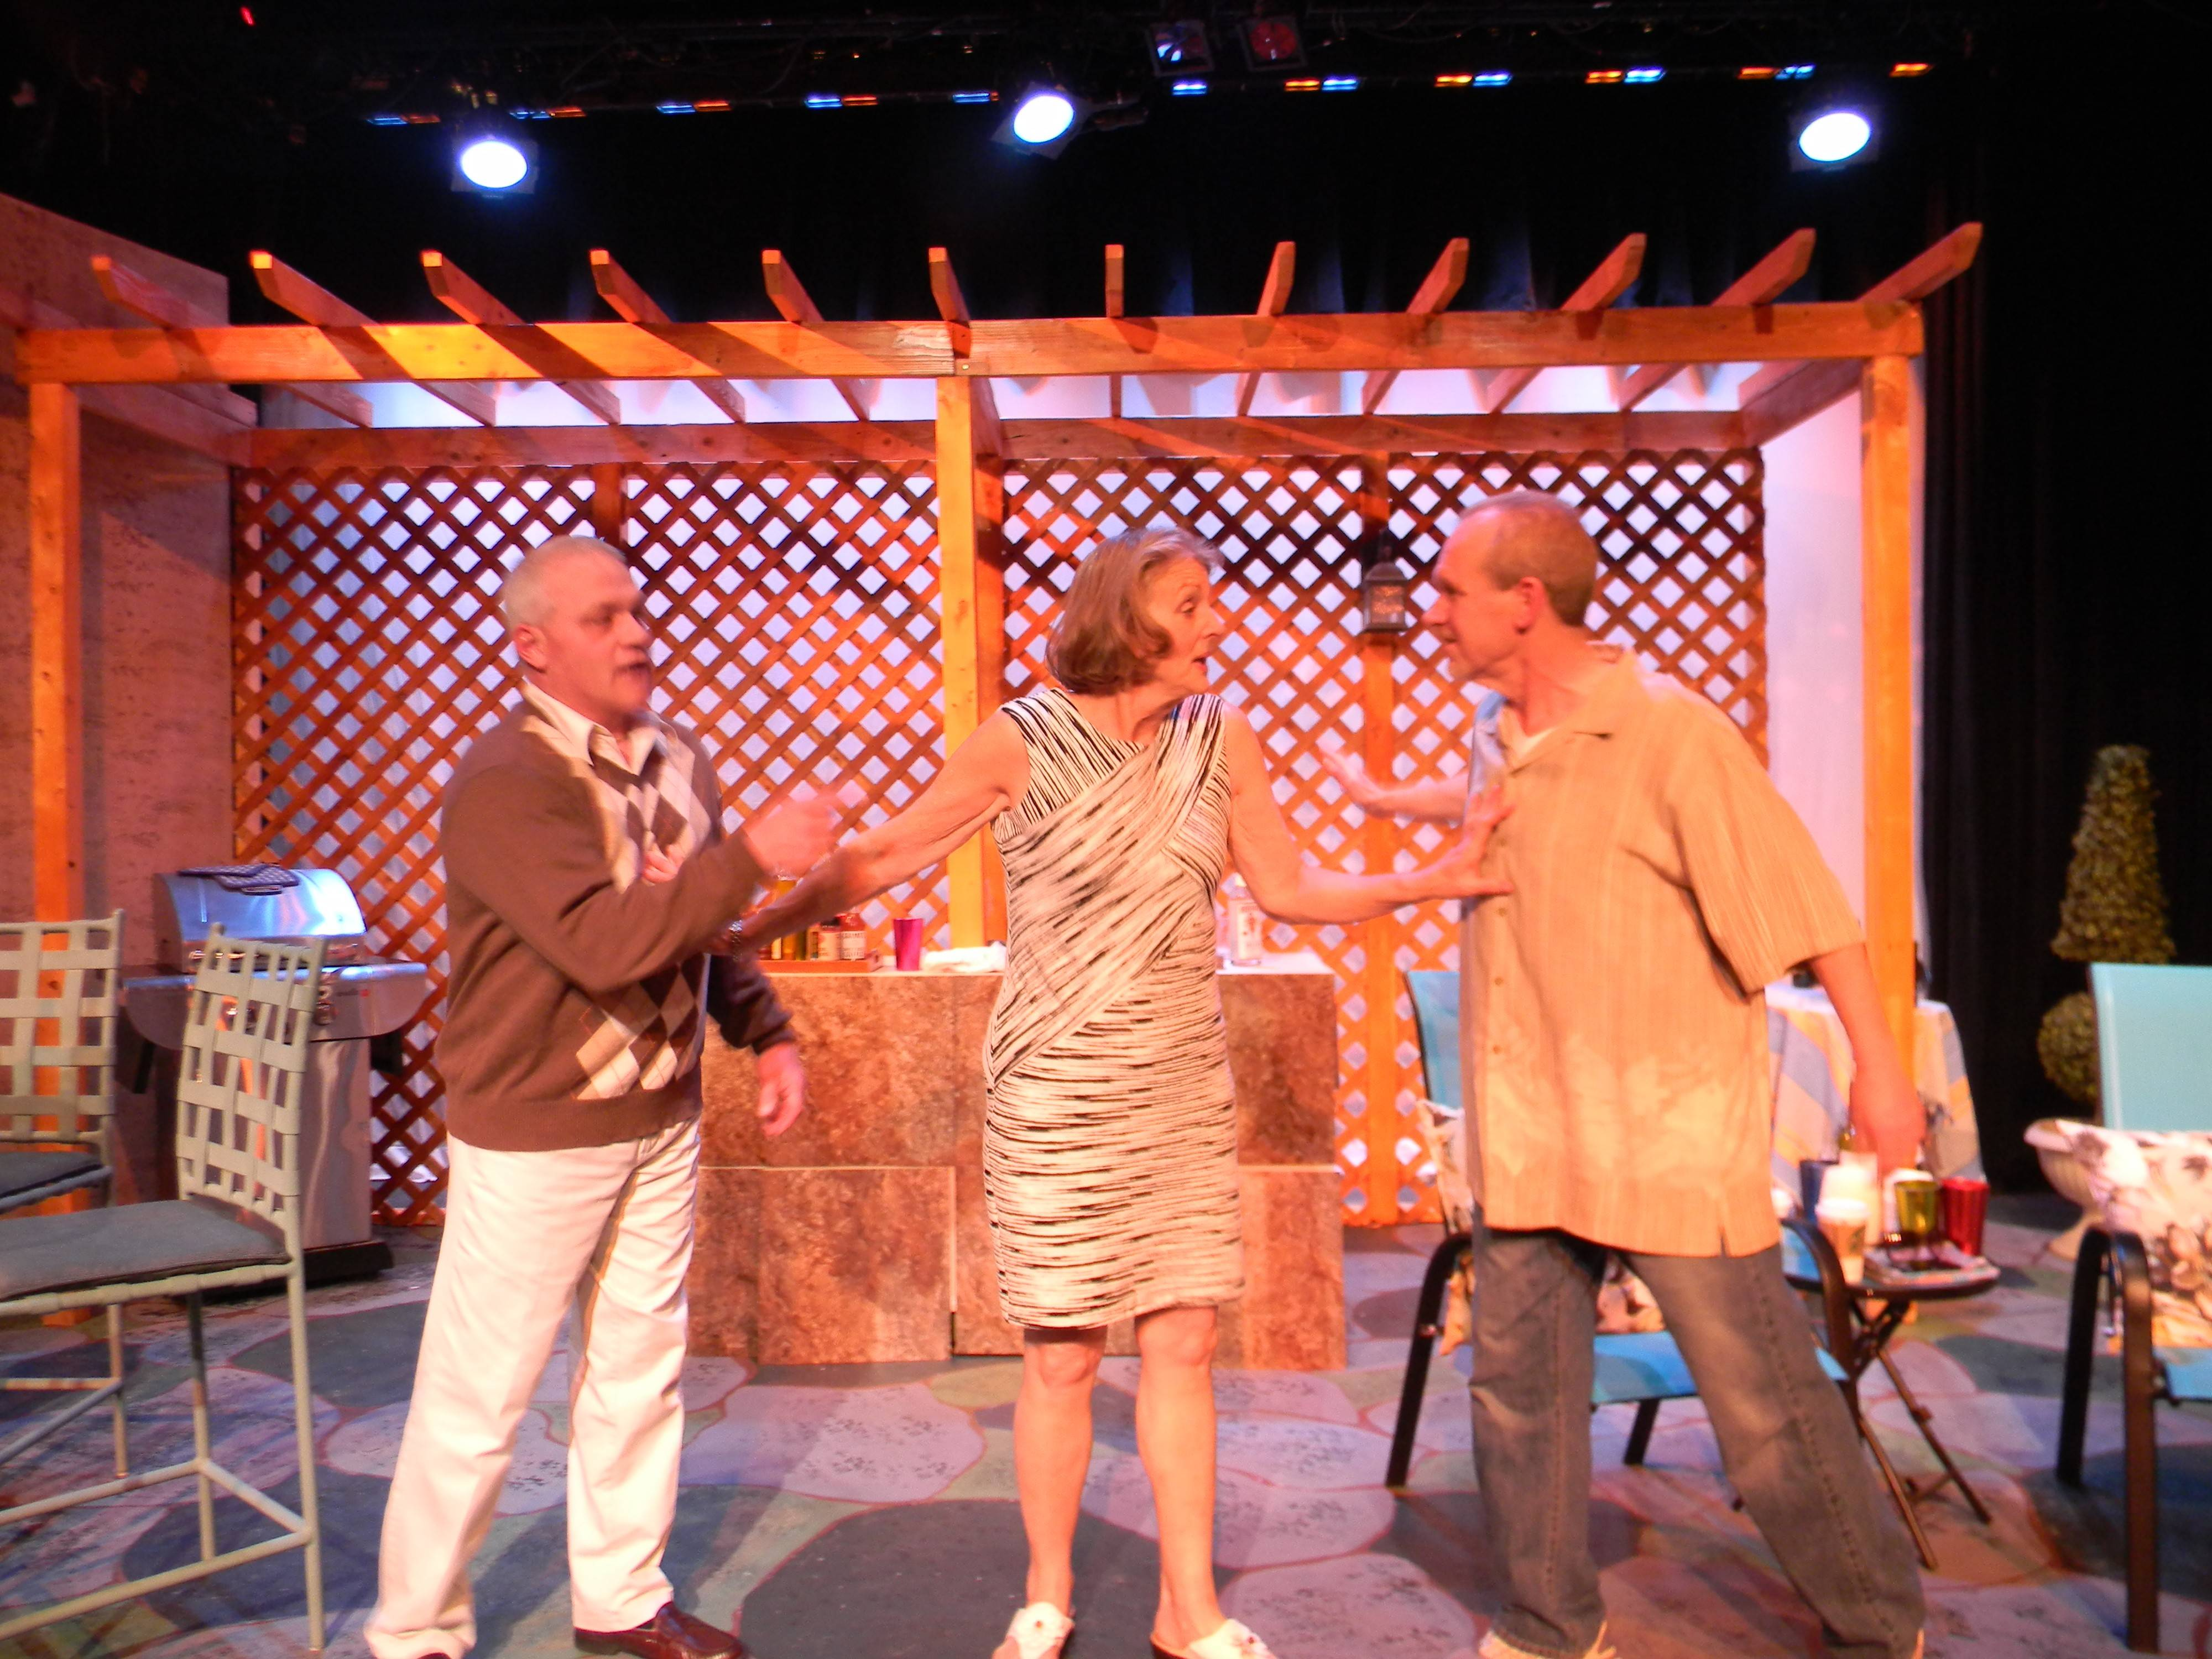 "The arrival of her ex-husband Jack (Pat Able, right) ignites sparks between Gwen (Donna Steele) and her current husband Norm (Bill Sherry, left) in Richard Culliton's dramedy ""The Bay of Portugal,"" in its world premiere at Steel Beam Theatre."